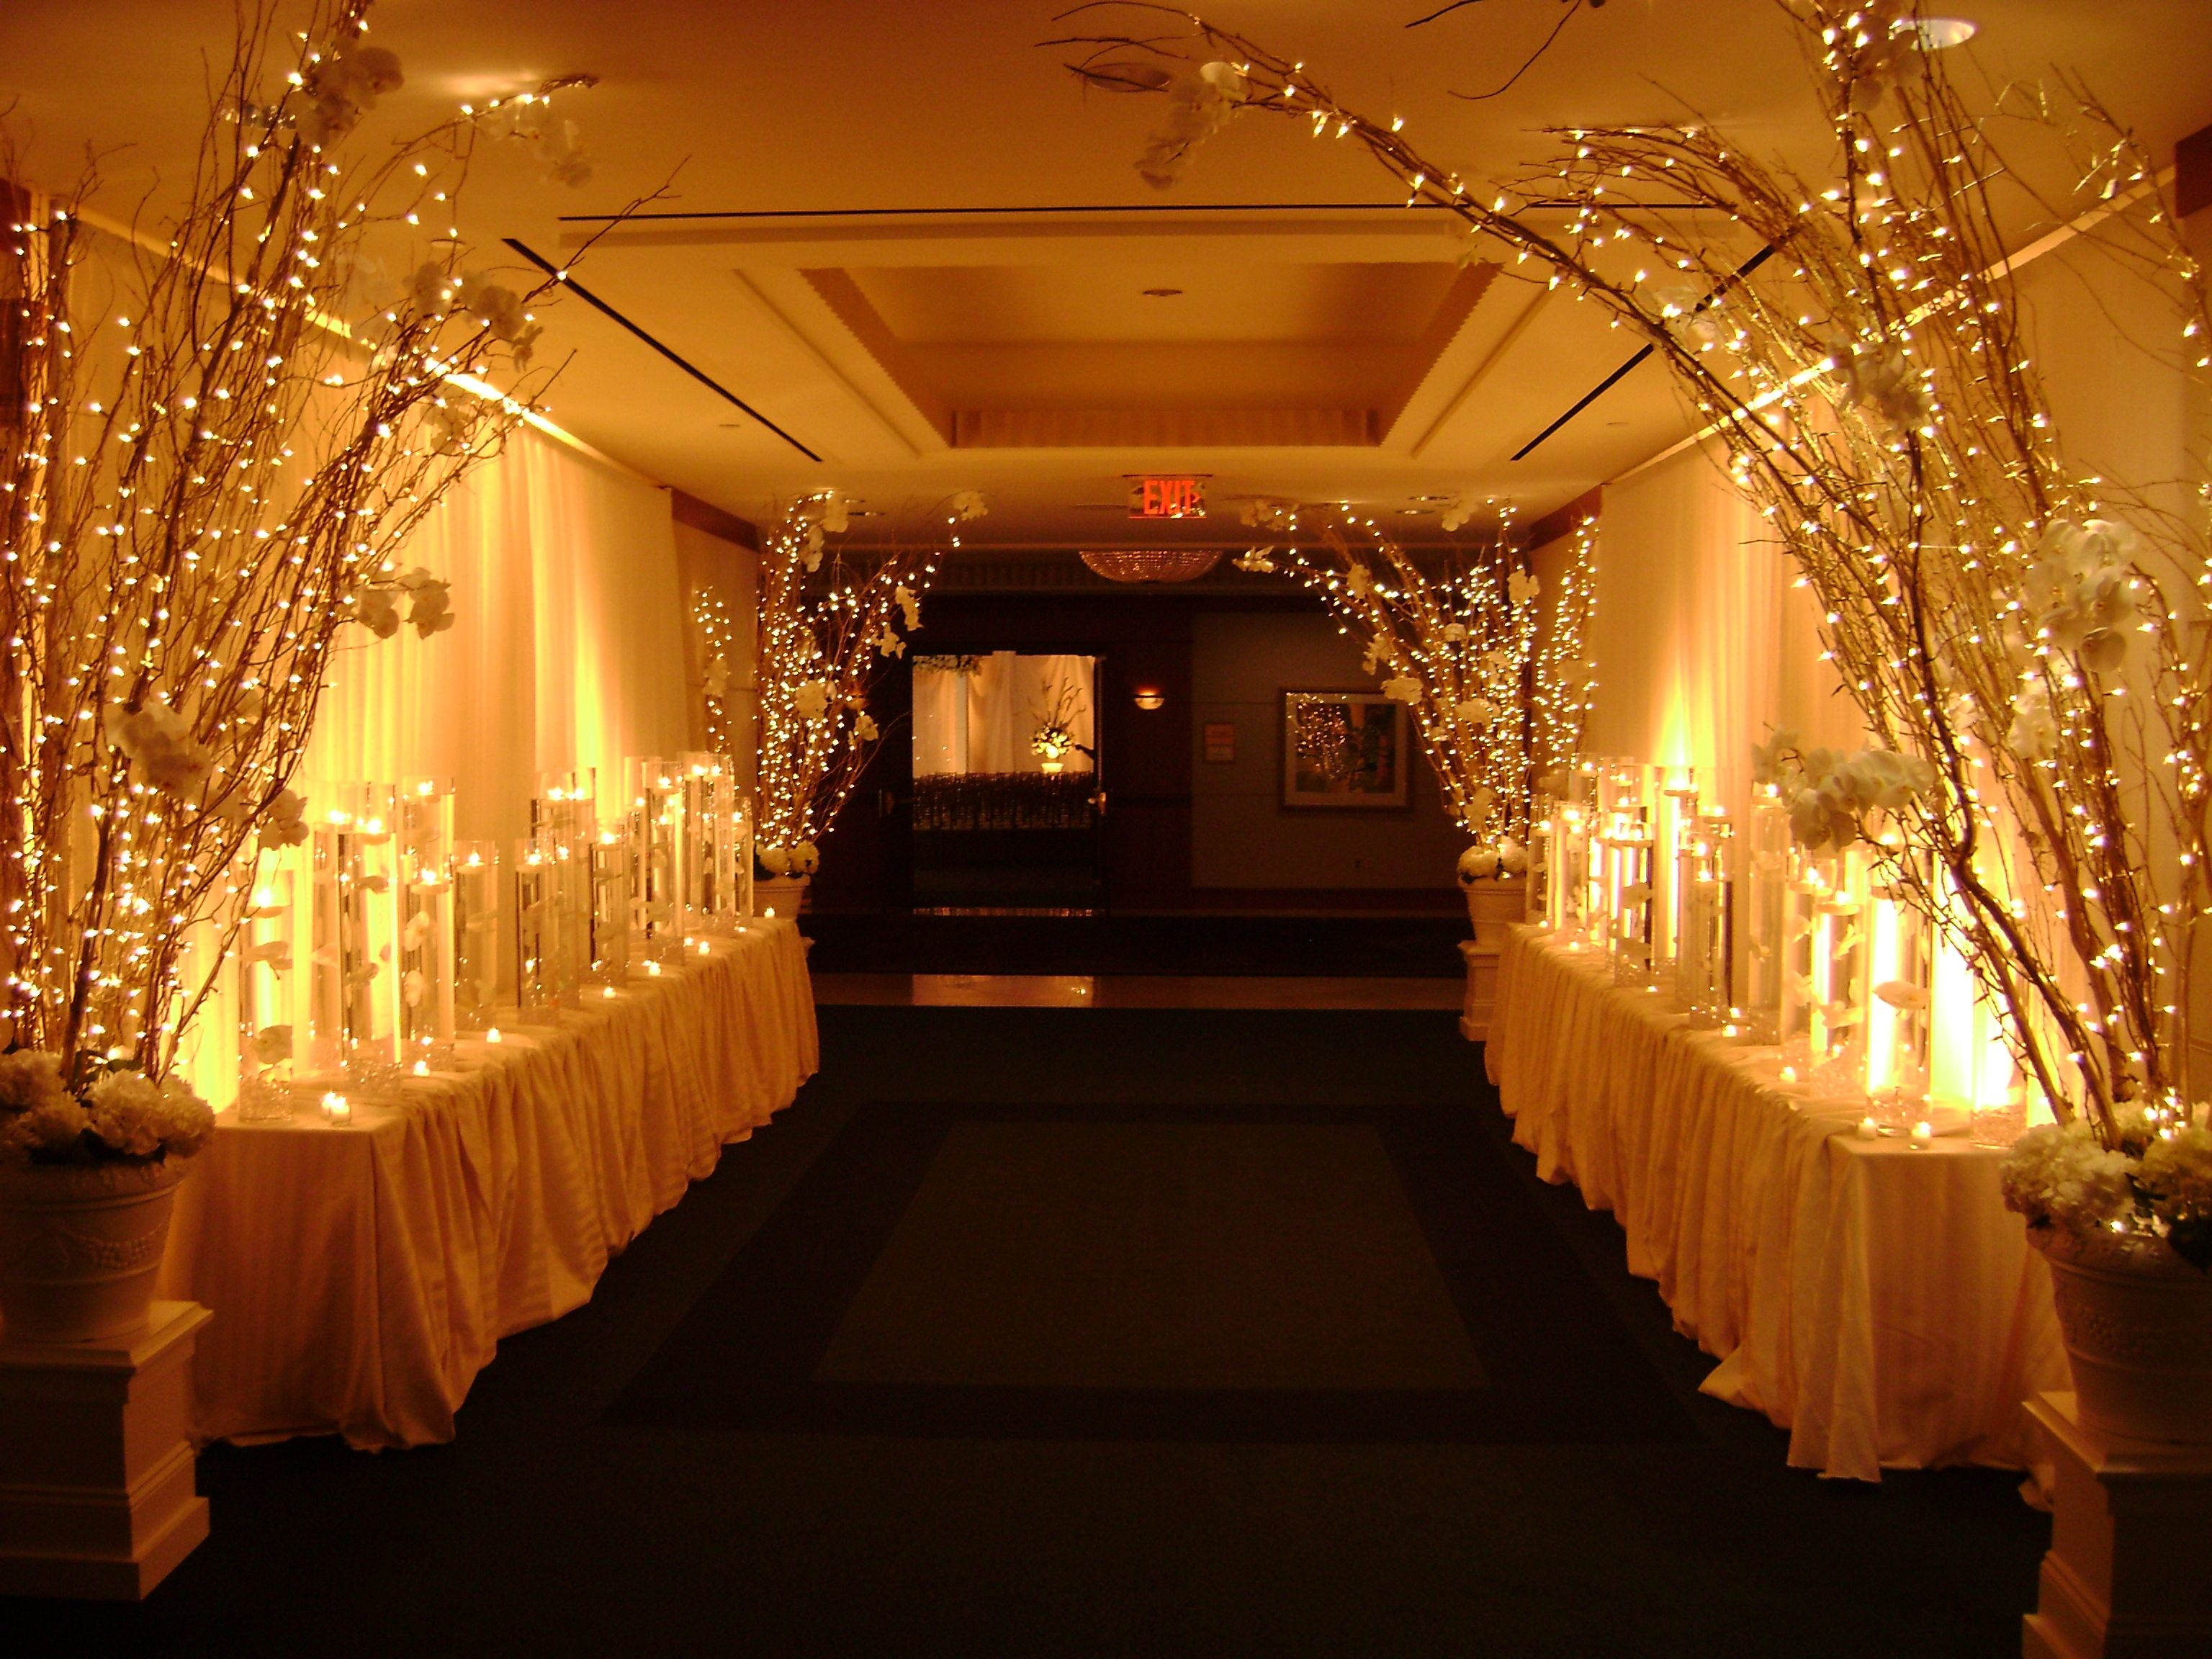 church wedding decorations candles%0A Event decor